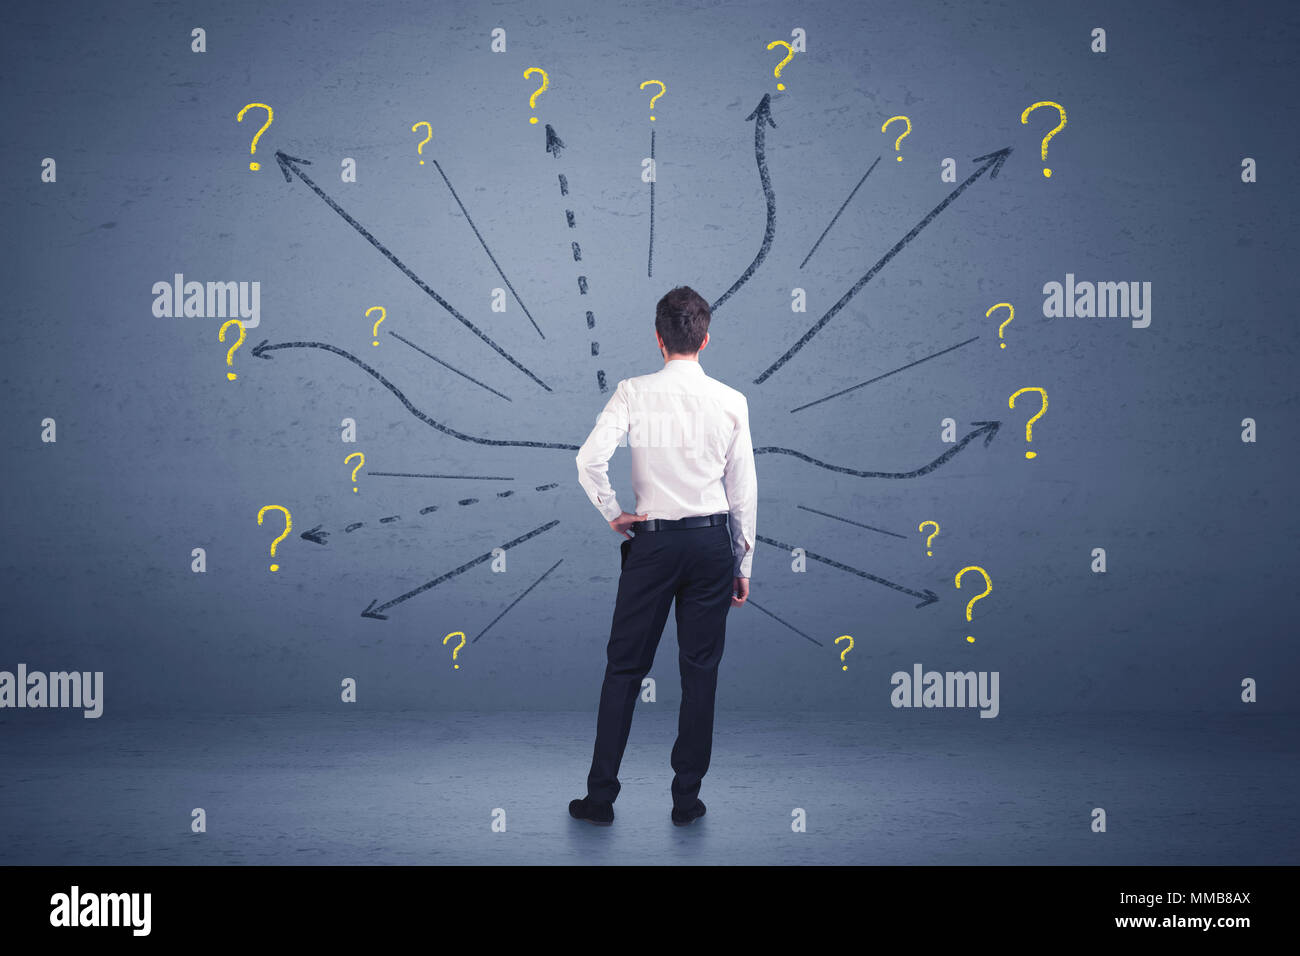 Businessman standing in front lines and question mark signs concept on background Stock Photo